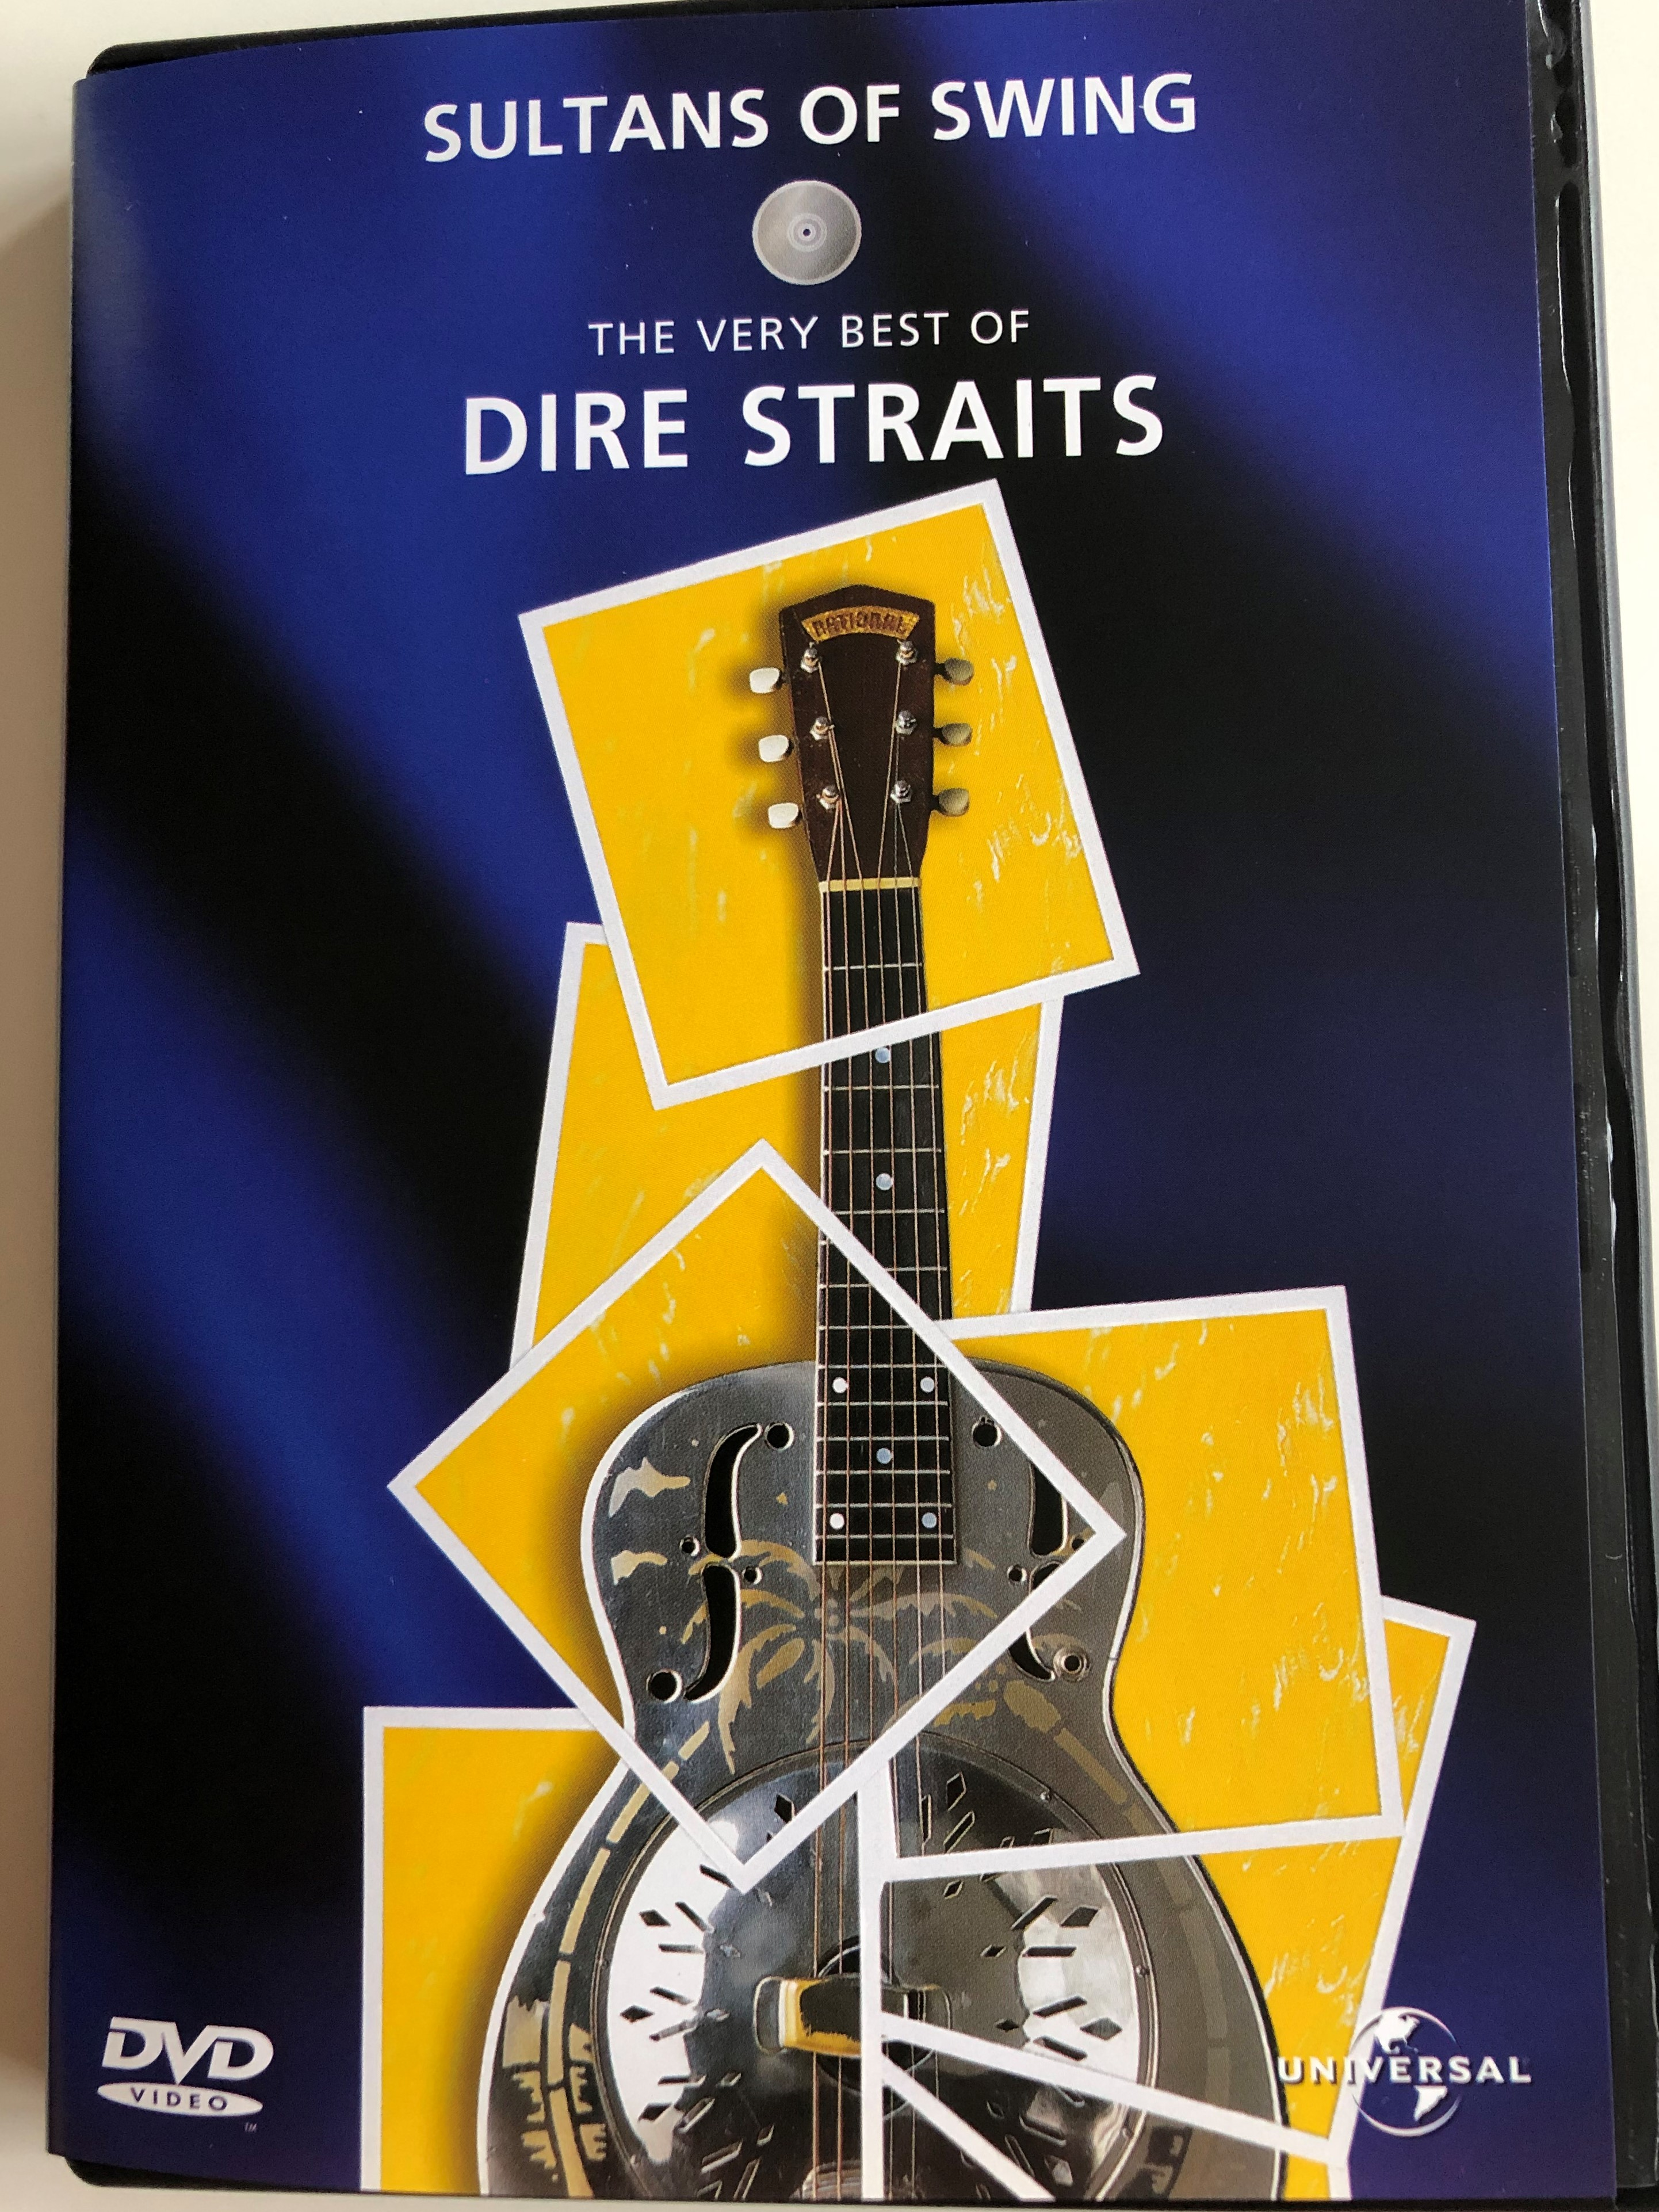 the-very-best-of-dire-straits-dvd-1999-sultans-of-swing-romeo-and-juliet-twisting-by-the-pool-love-over-gold-walk-of-life-audio-interview-with-mark-knopfler-universal-1-.jpg